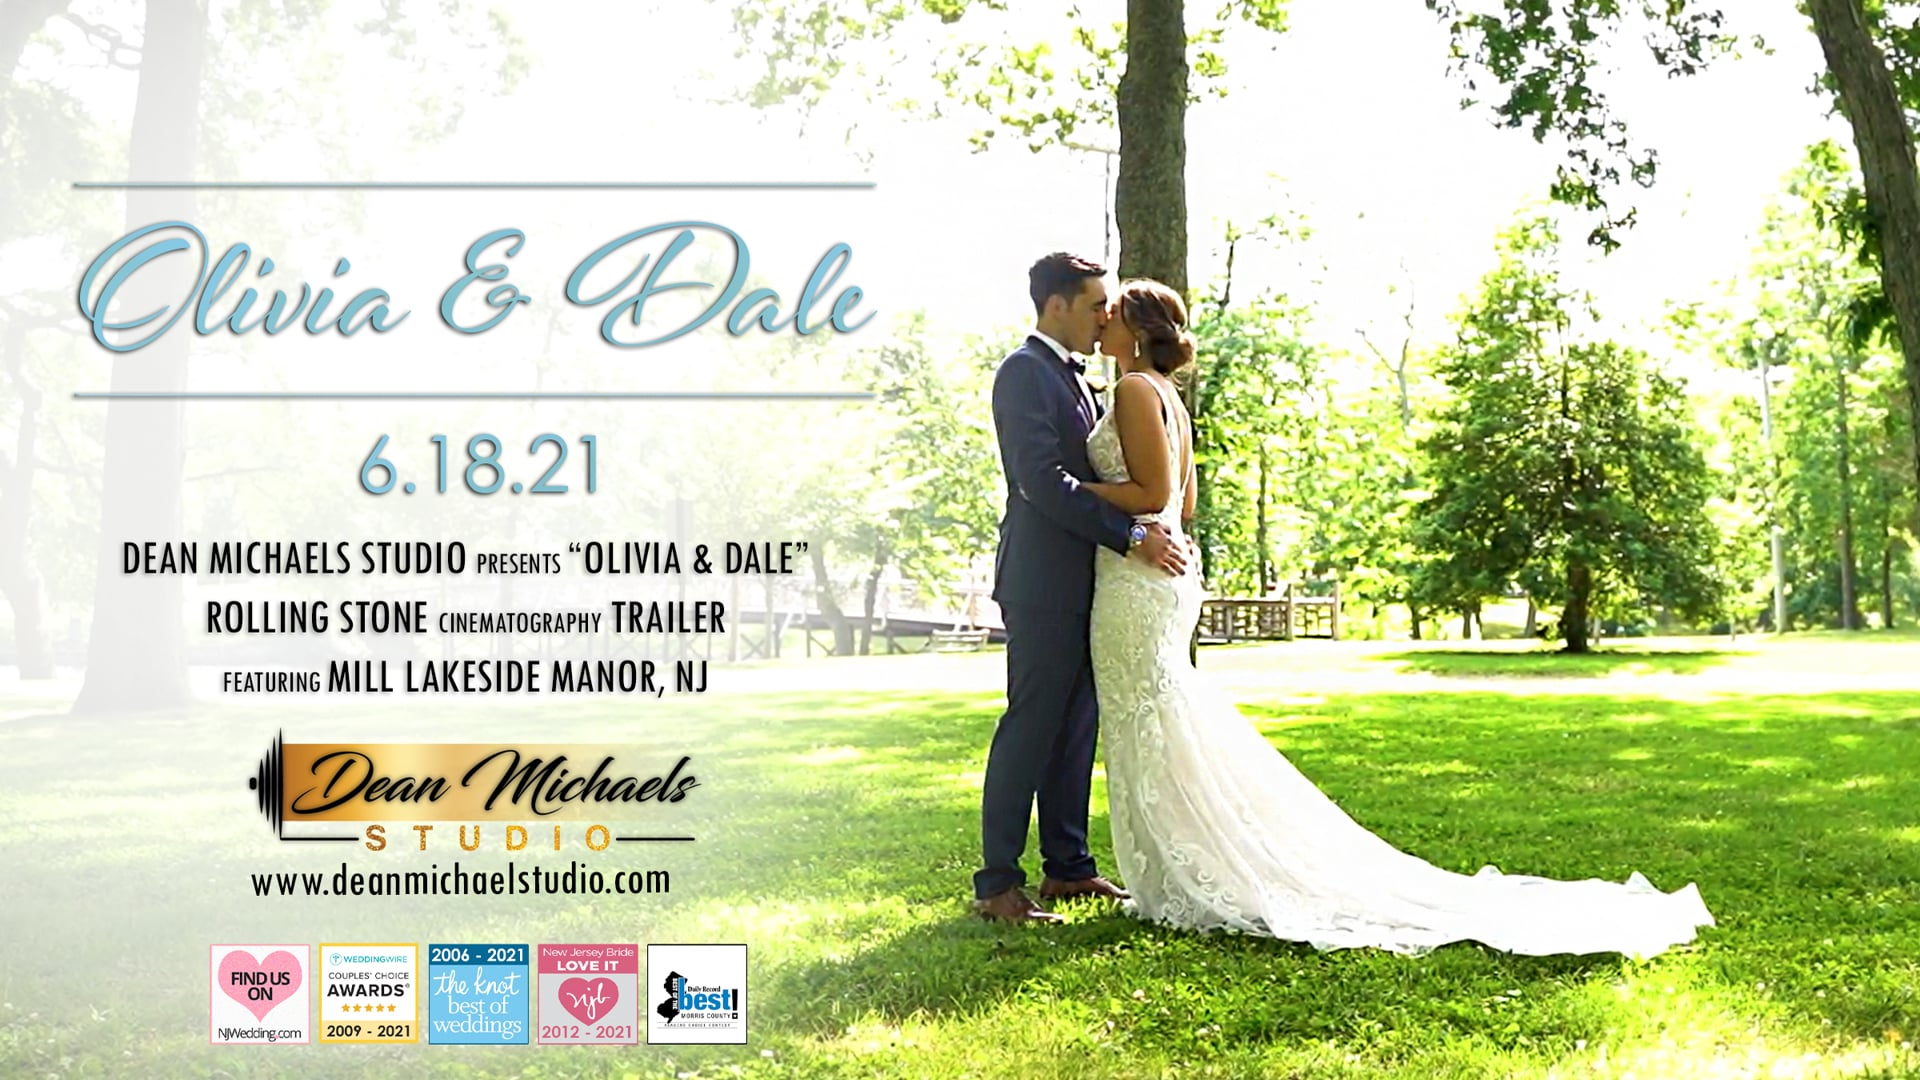 Olivia & Dale's Wedding Trailer at The Mill Lakeside Manor, NJ